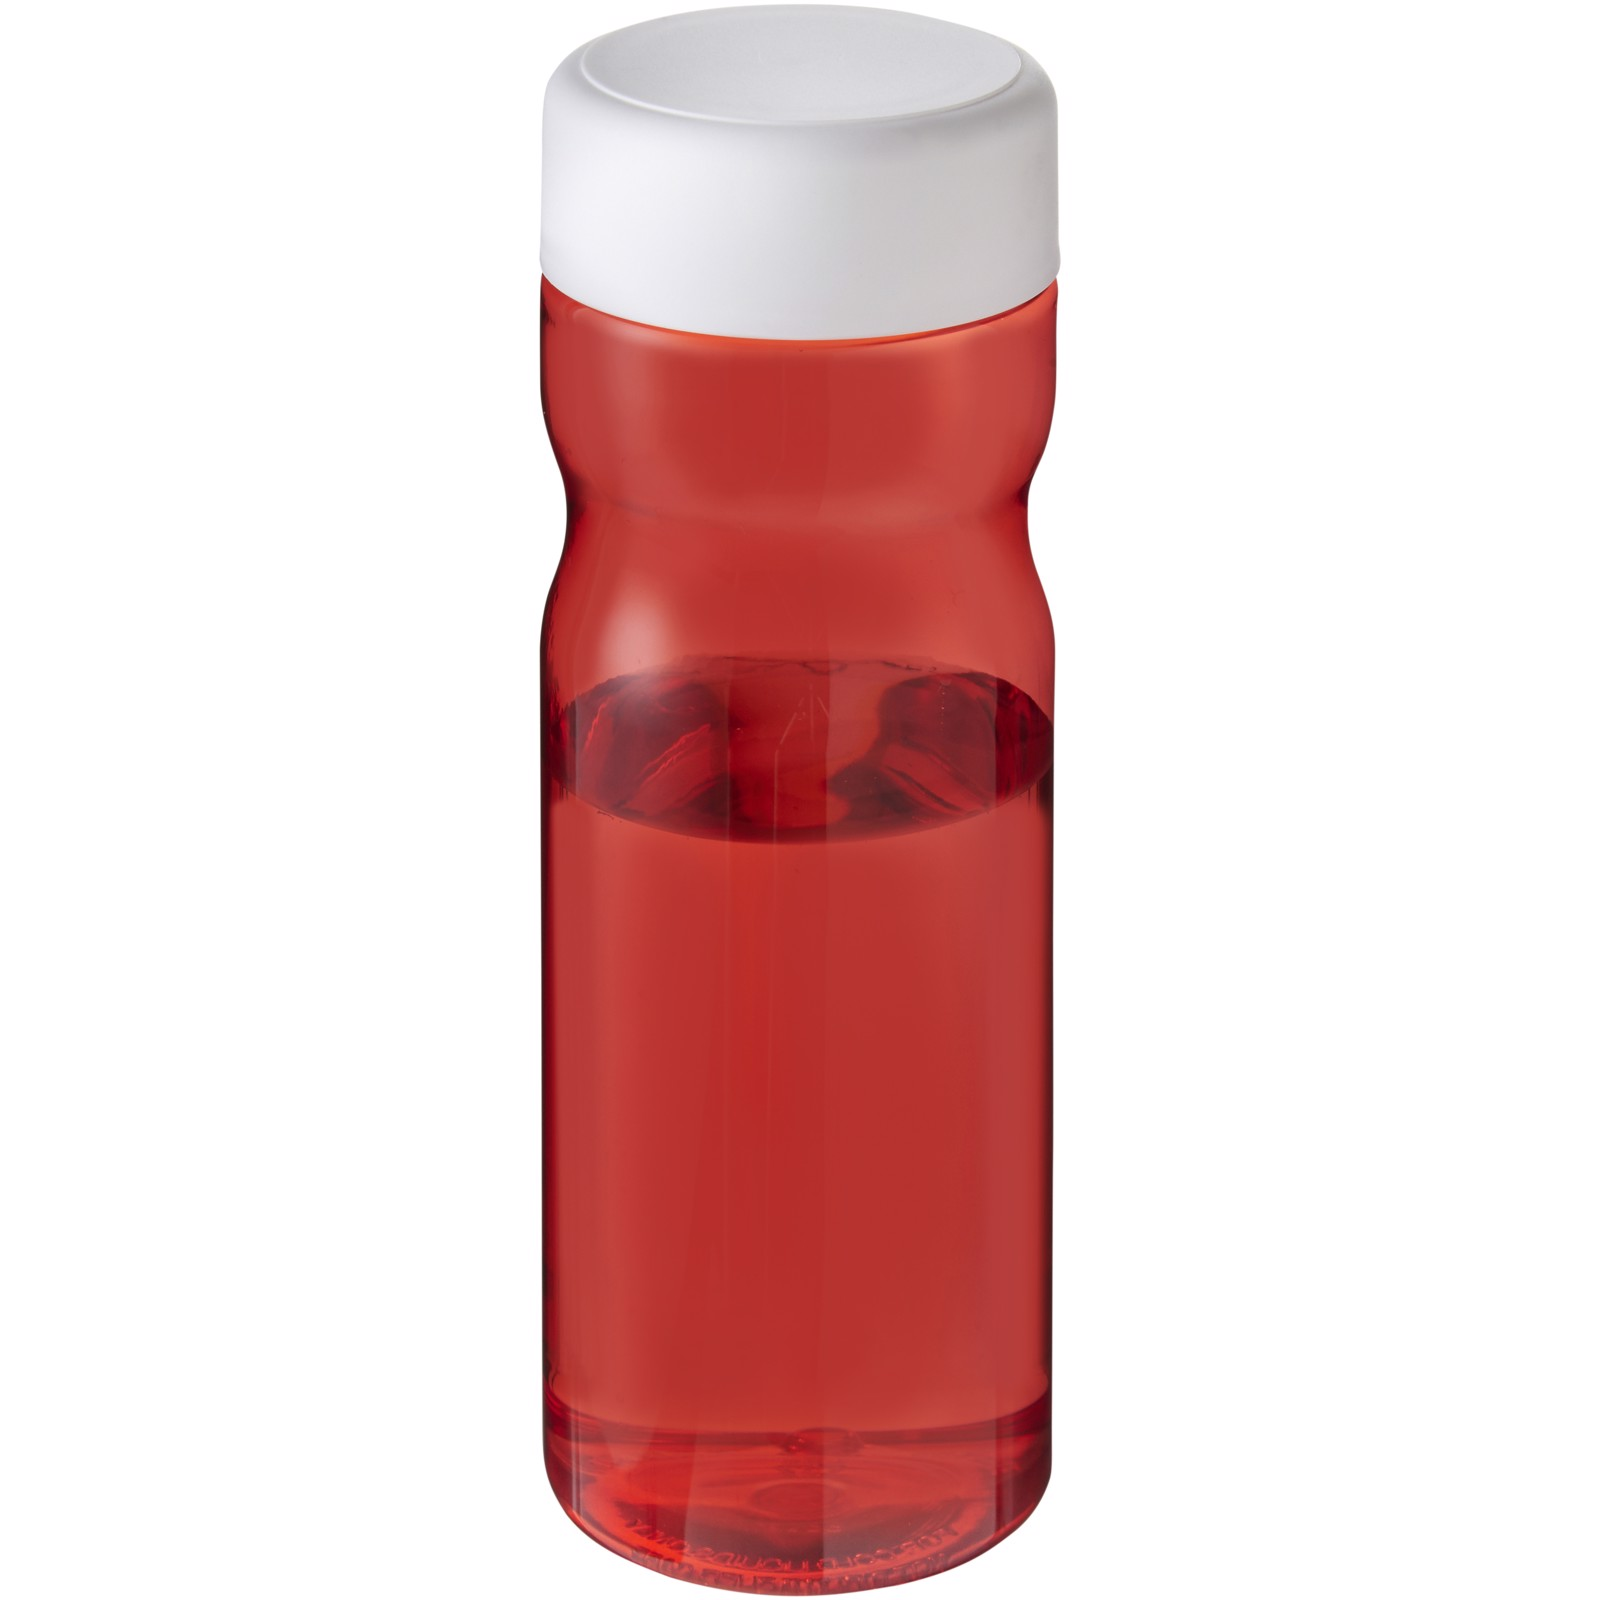 H2O Base 650 ml screw cap water bottle - Red / White